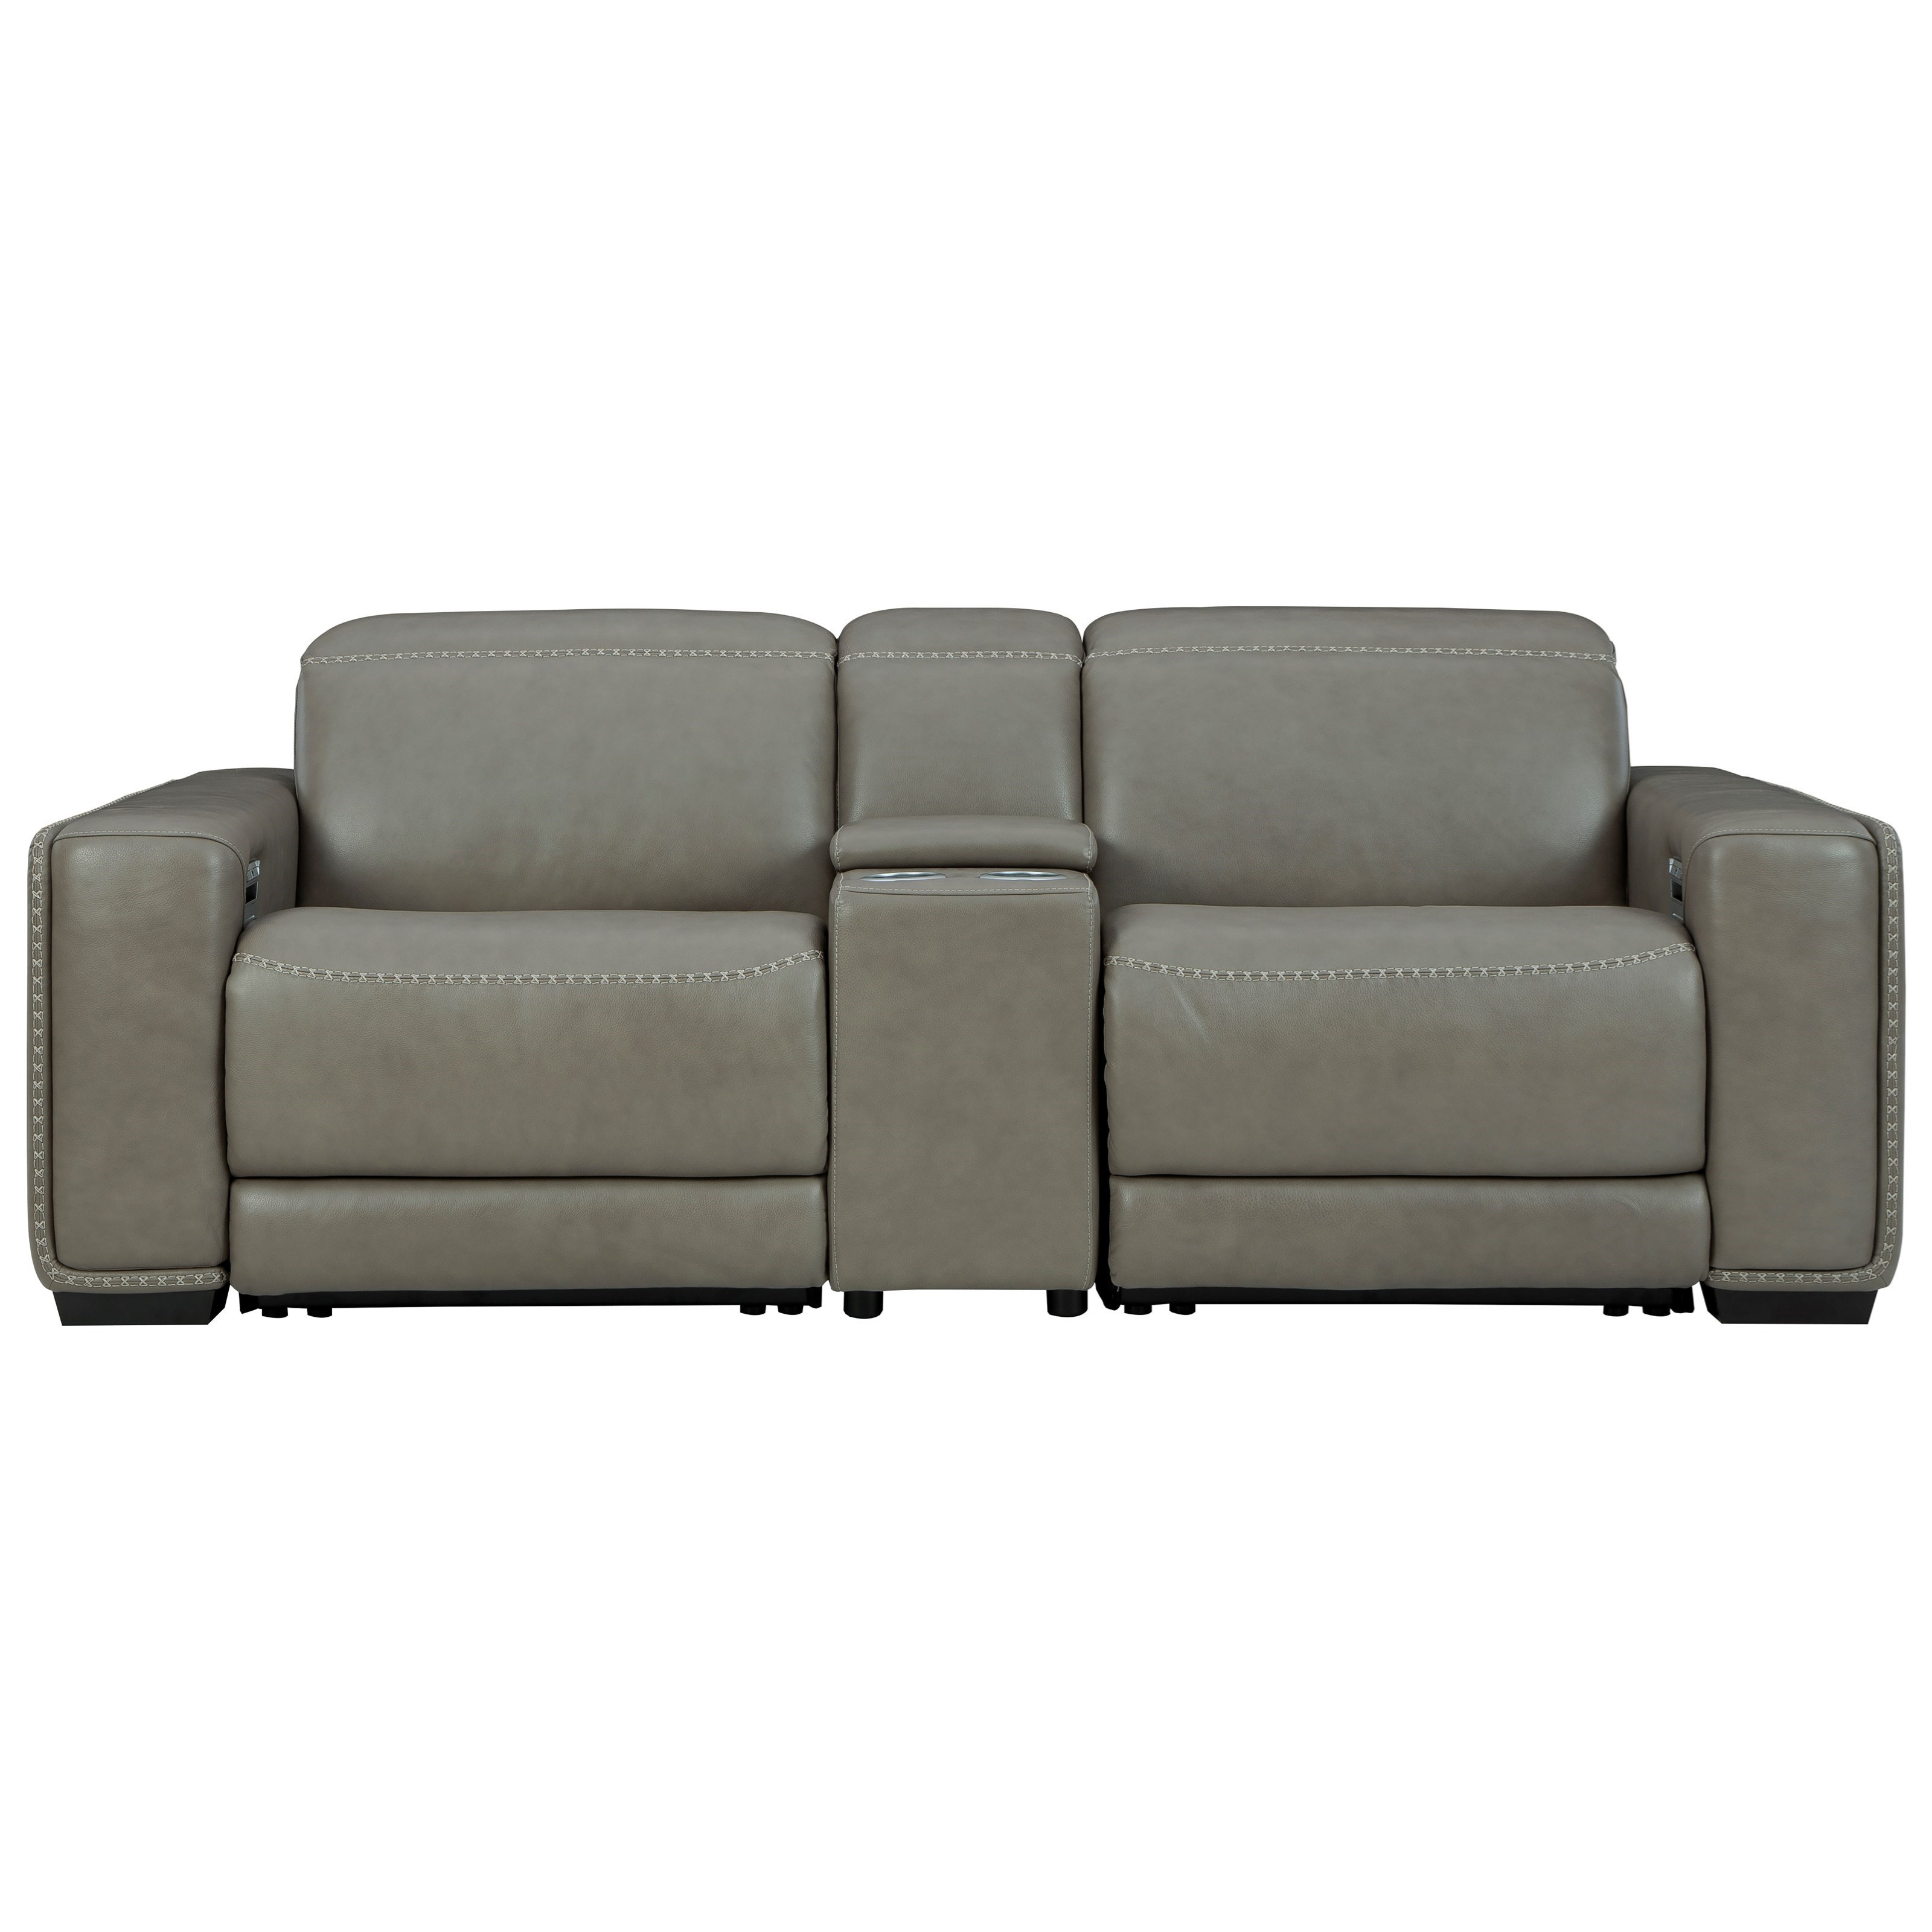 Correze Power Reclining Loveseat w/ Console by Ashley (Signature Design) at Johnny Janosik